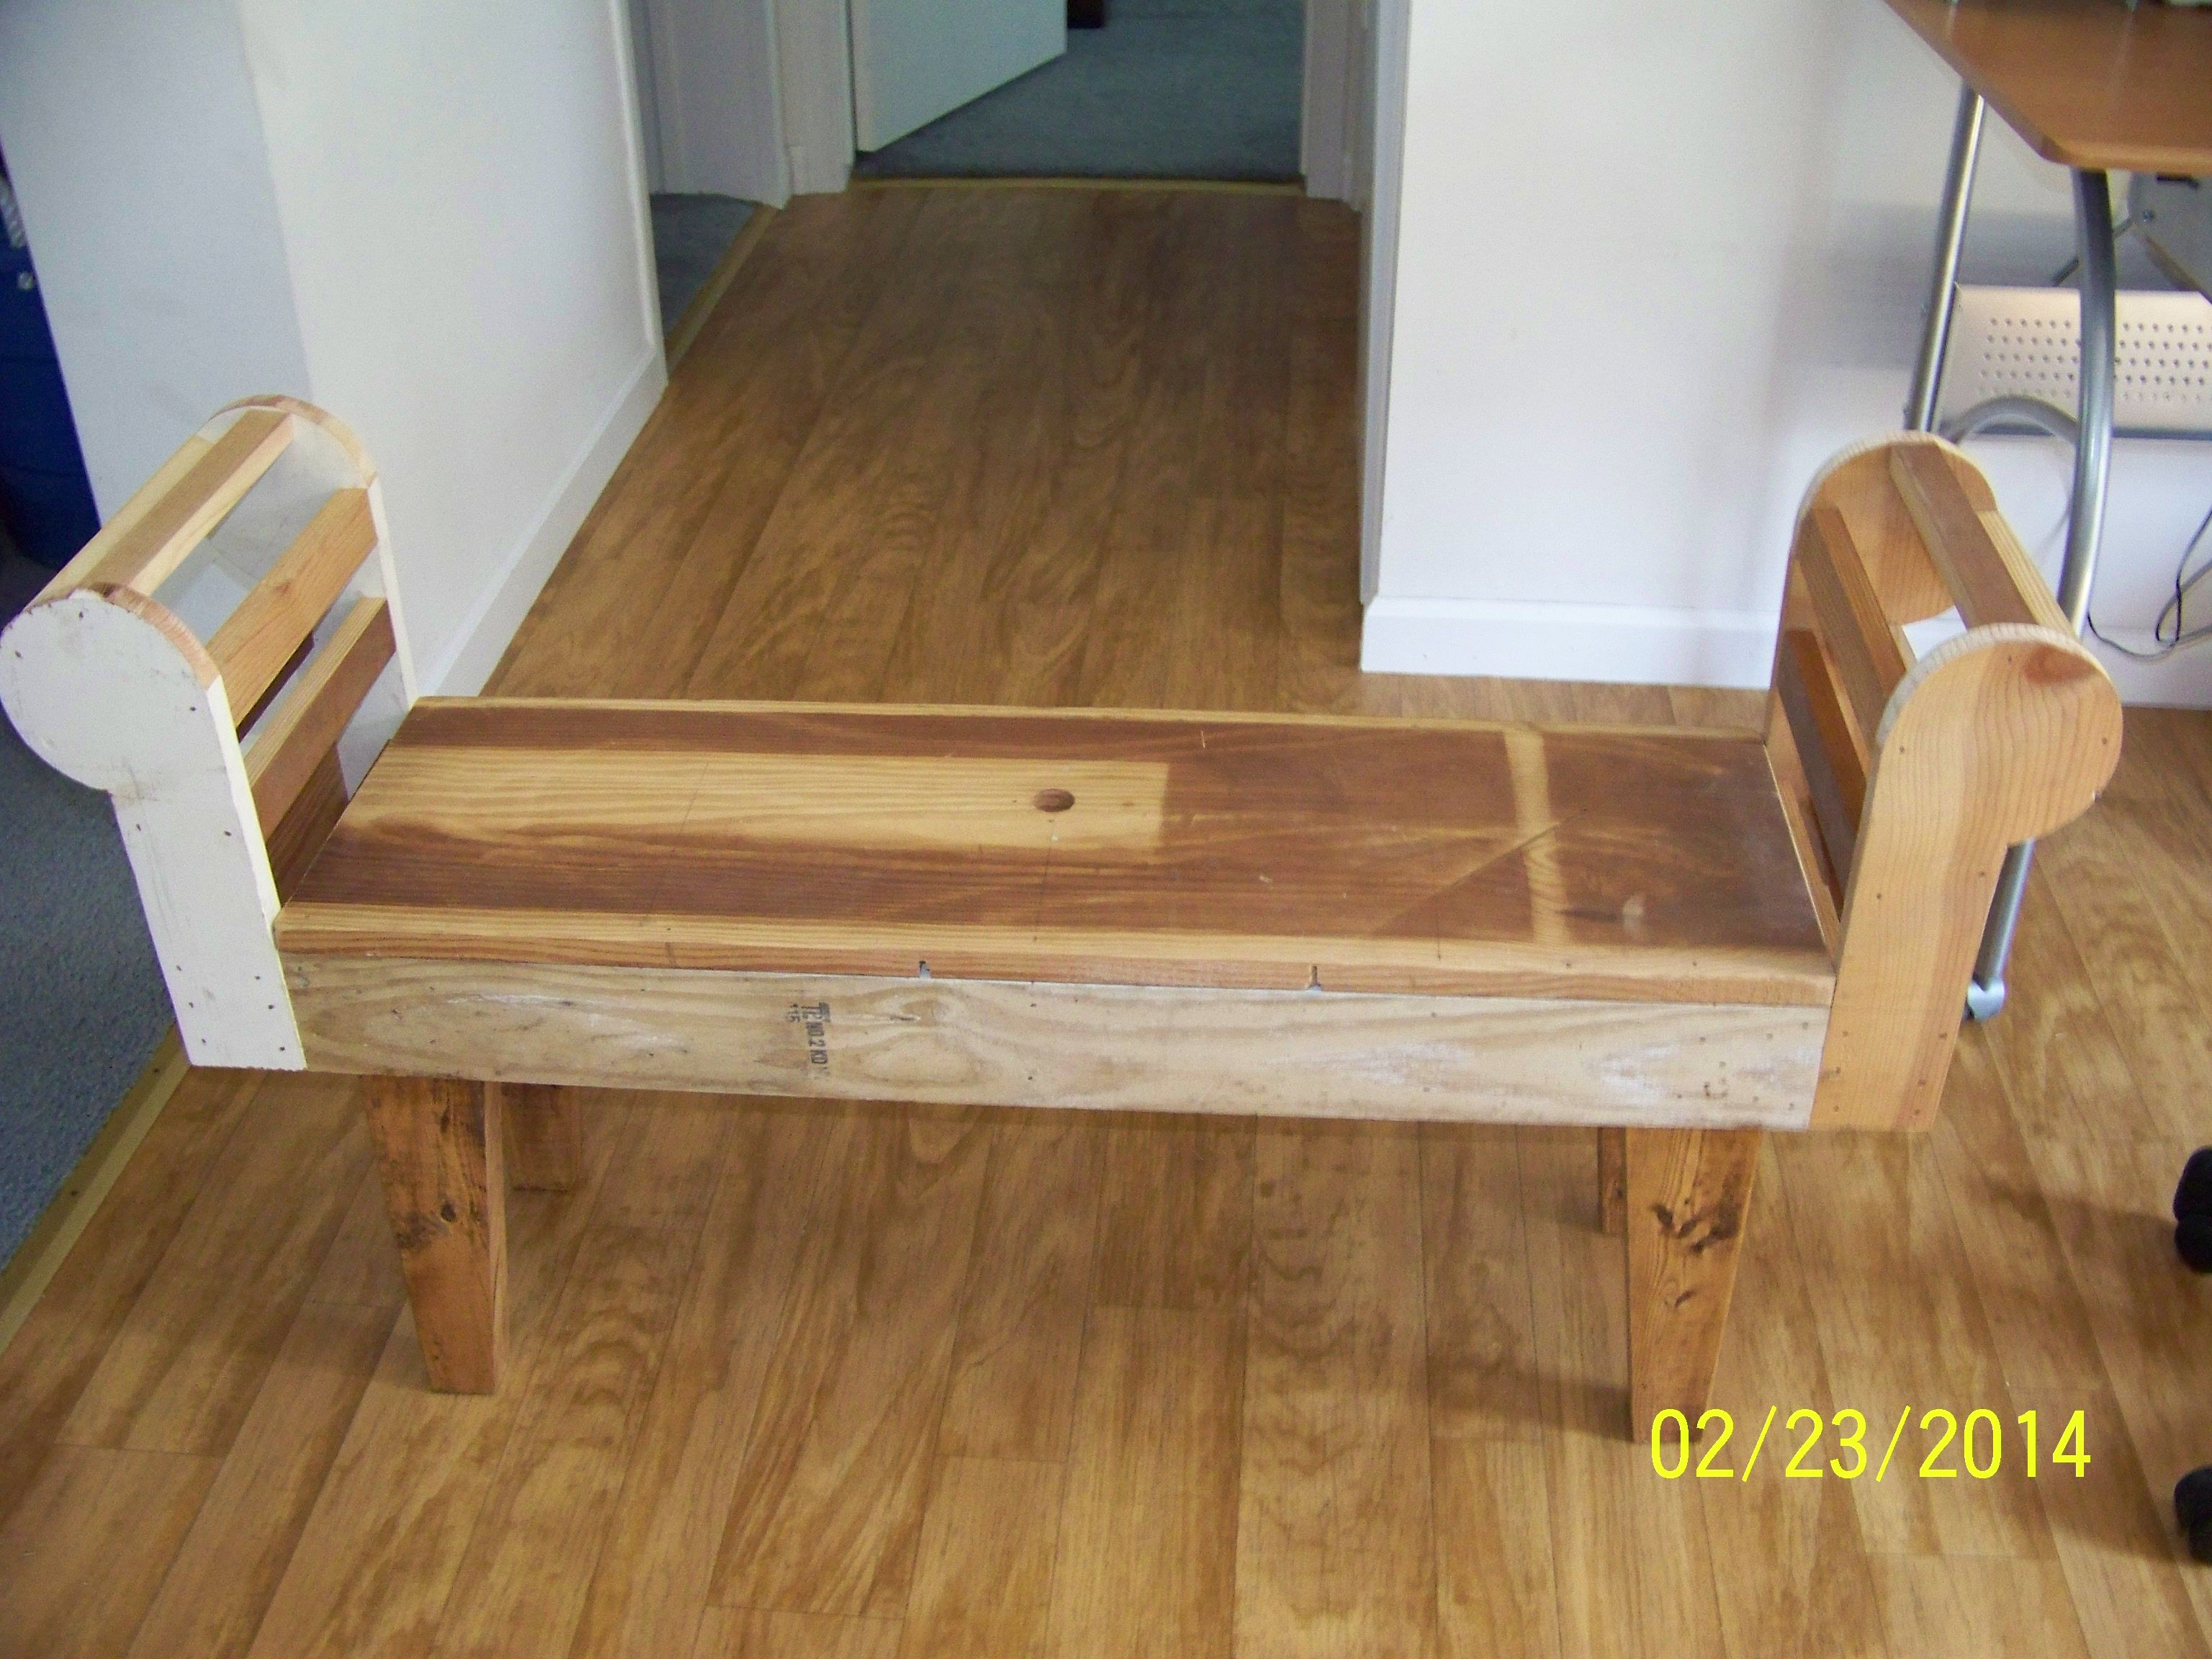 This Is The Frame For A Rolled Arm Bench That I Designed And My Dad Helped Me Build It It Is Made From All Scrap Material Diy Furniture Diy Ottoman Wooden